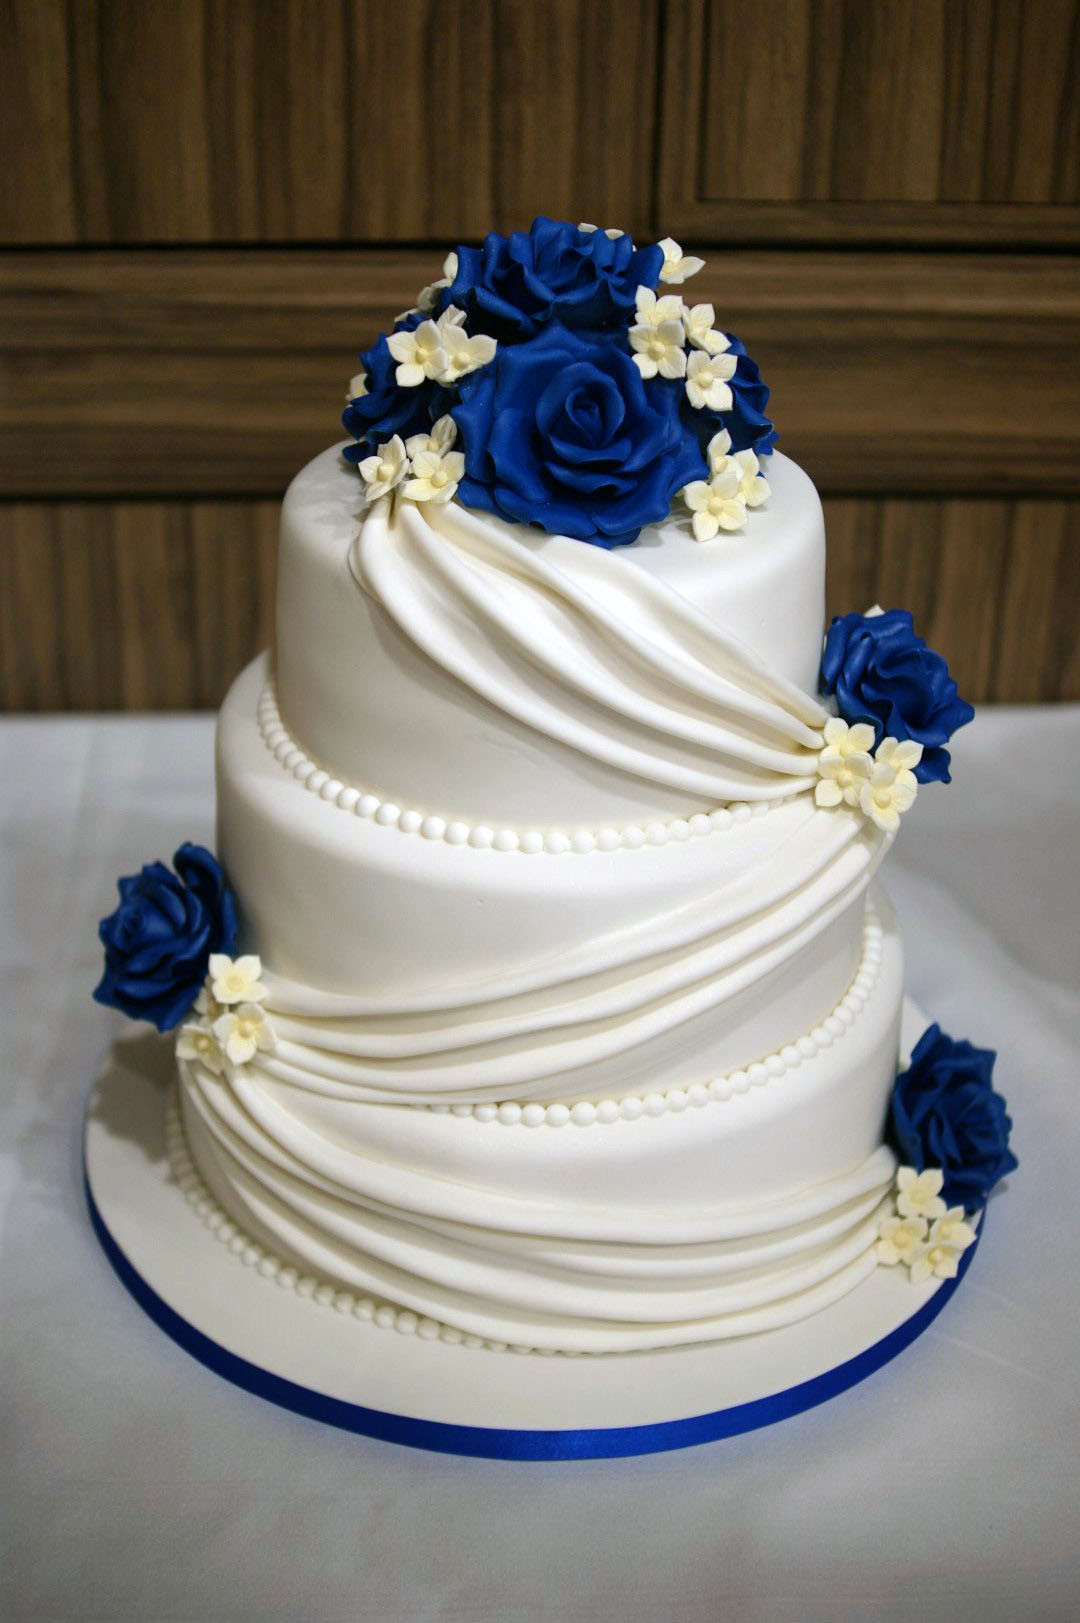 Three Tear Wedding Cakes  3 tier wedding cake drapes and roses with cupcake tower 10